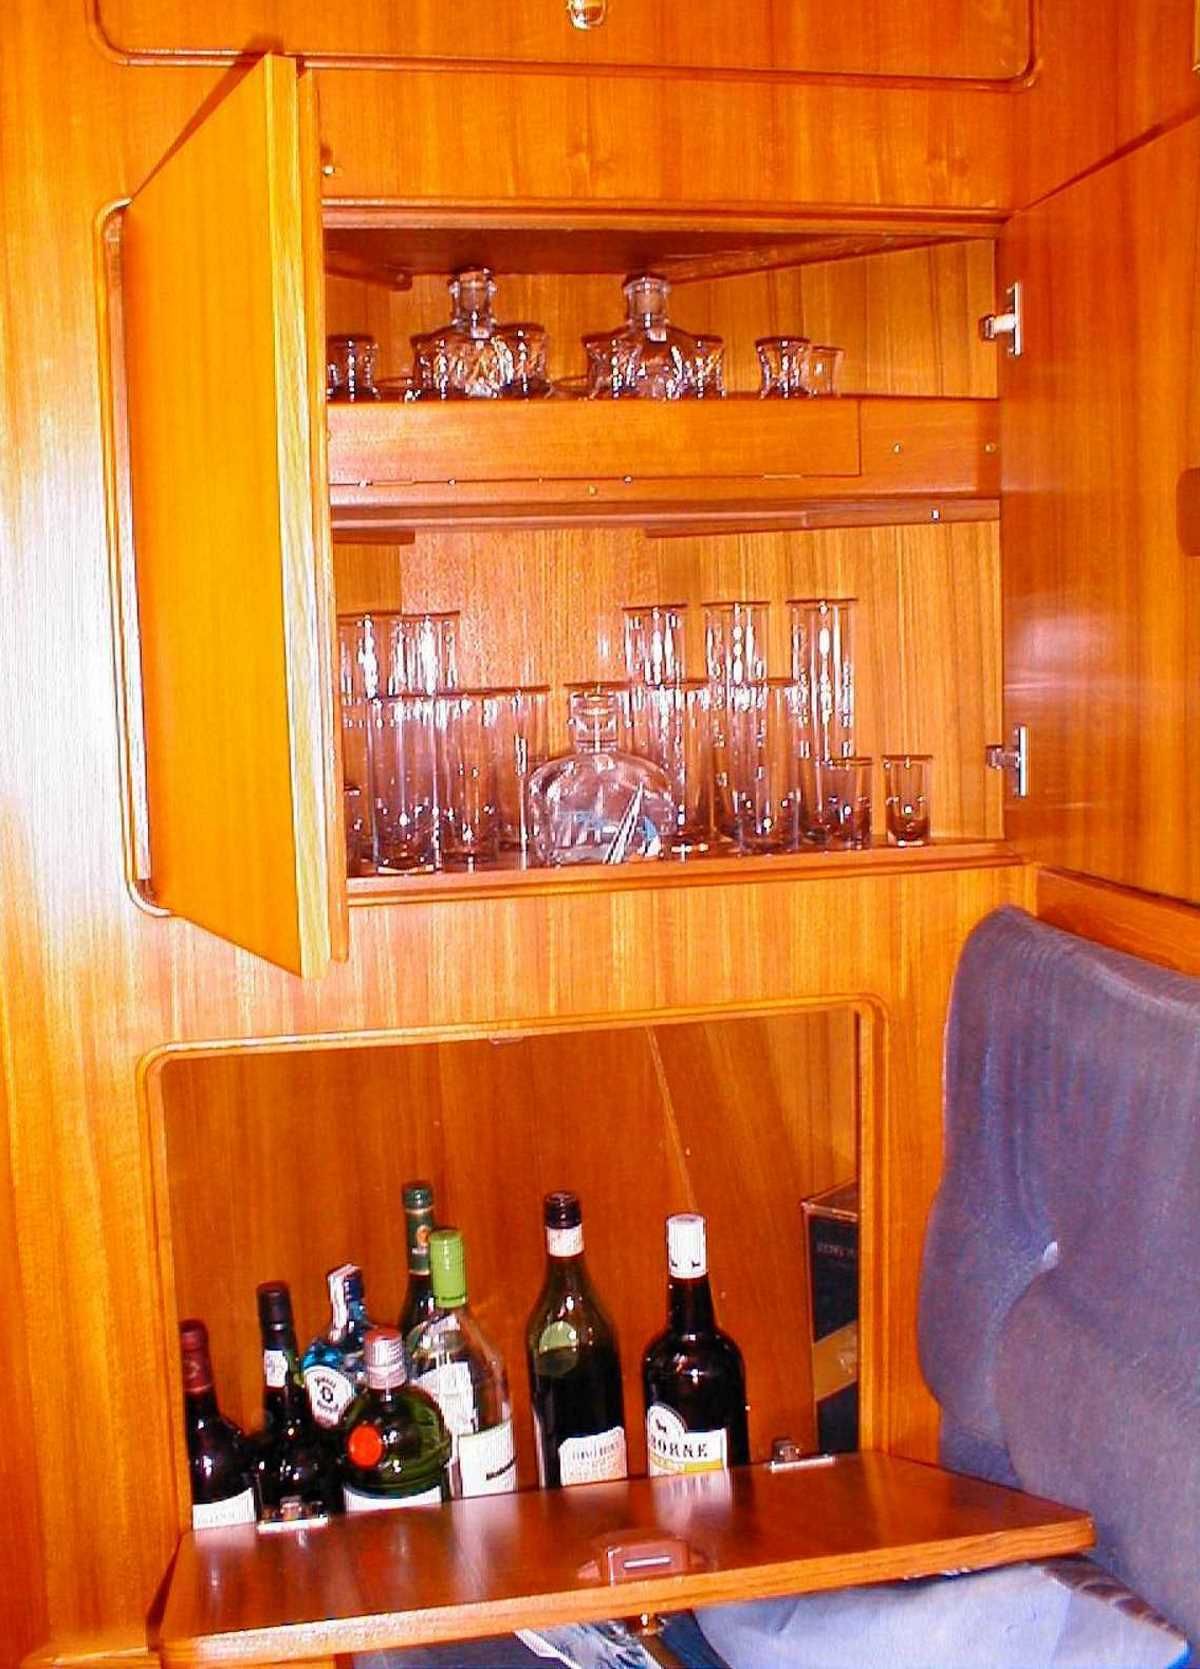 Hallig-43-Gläserfach-Bar.jpg